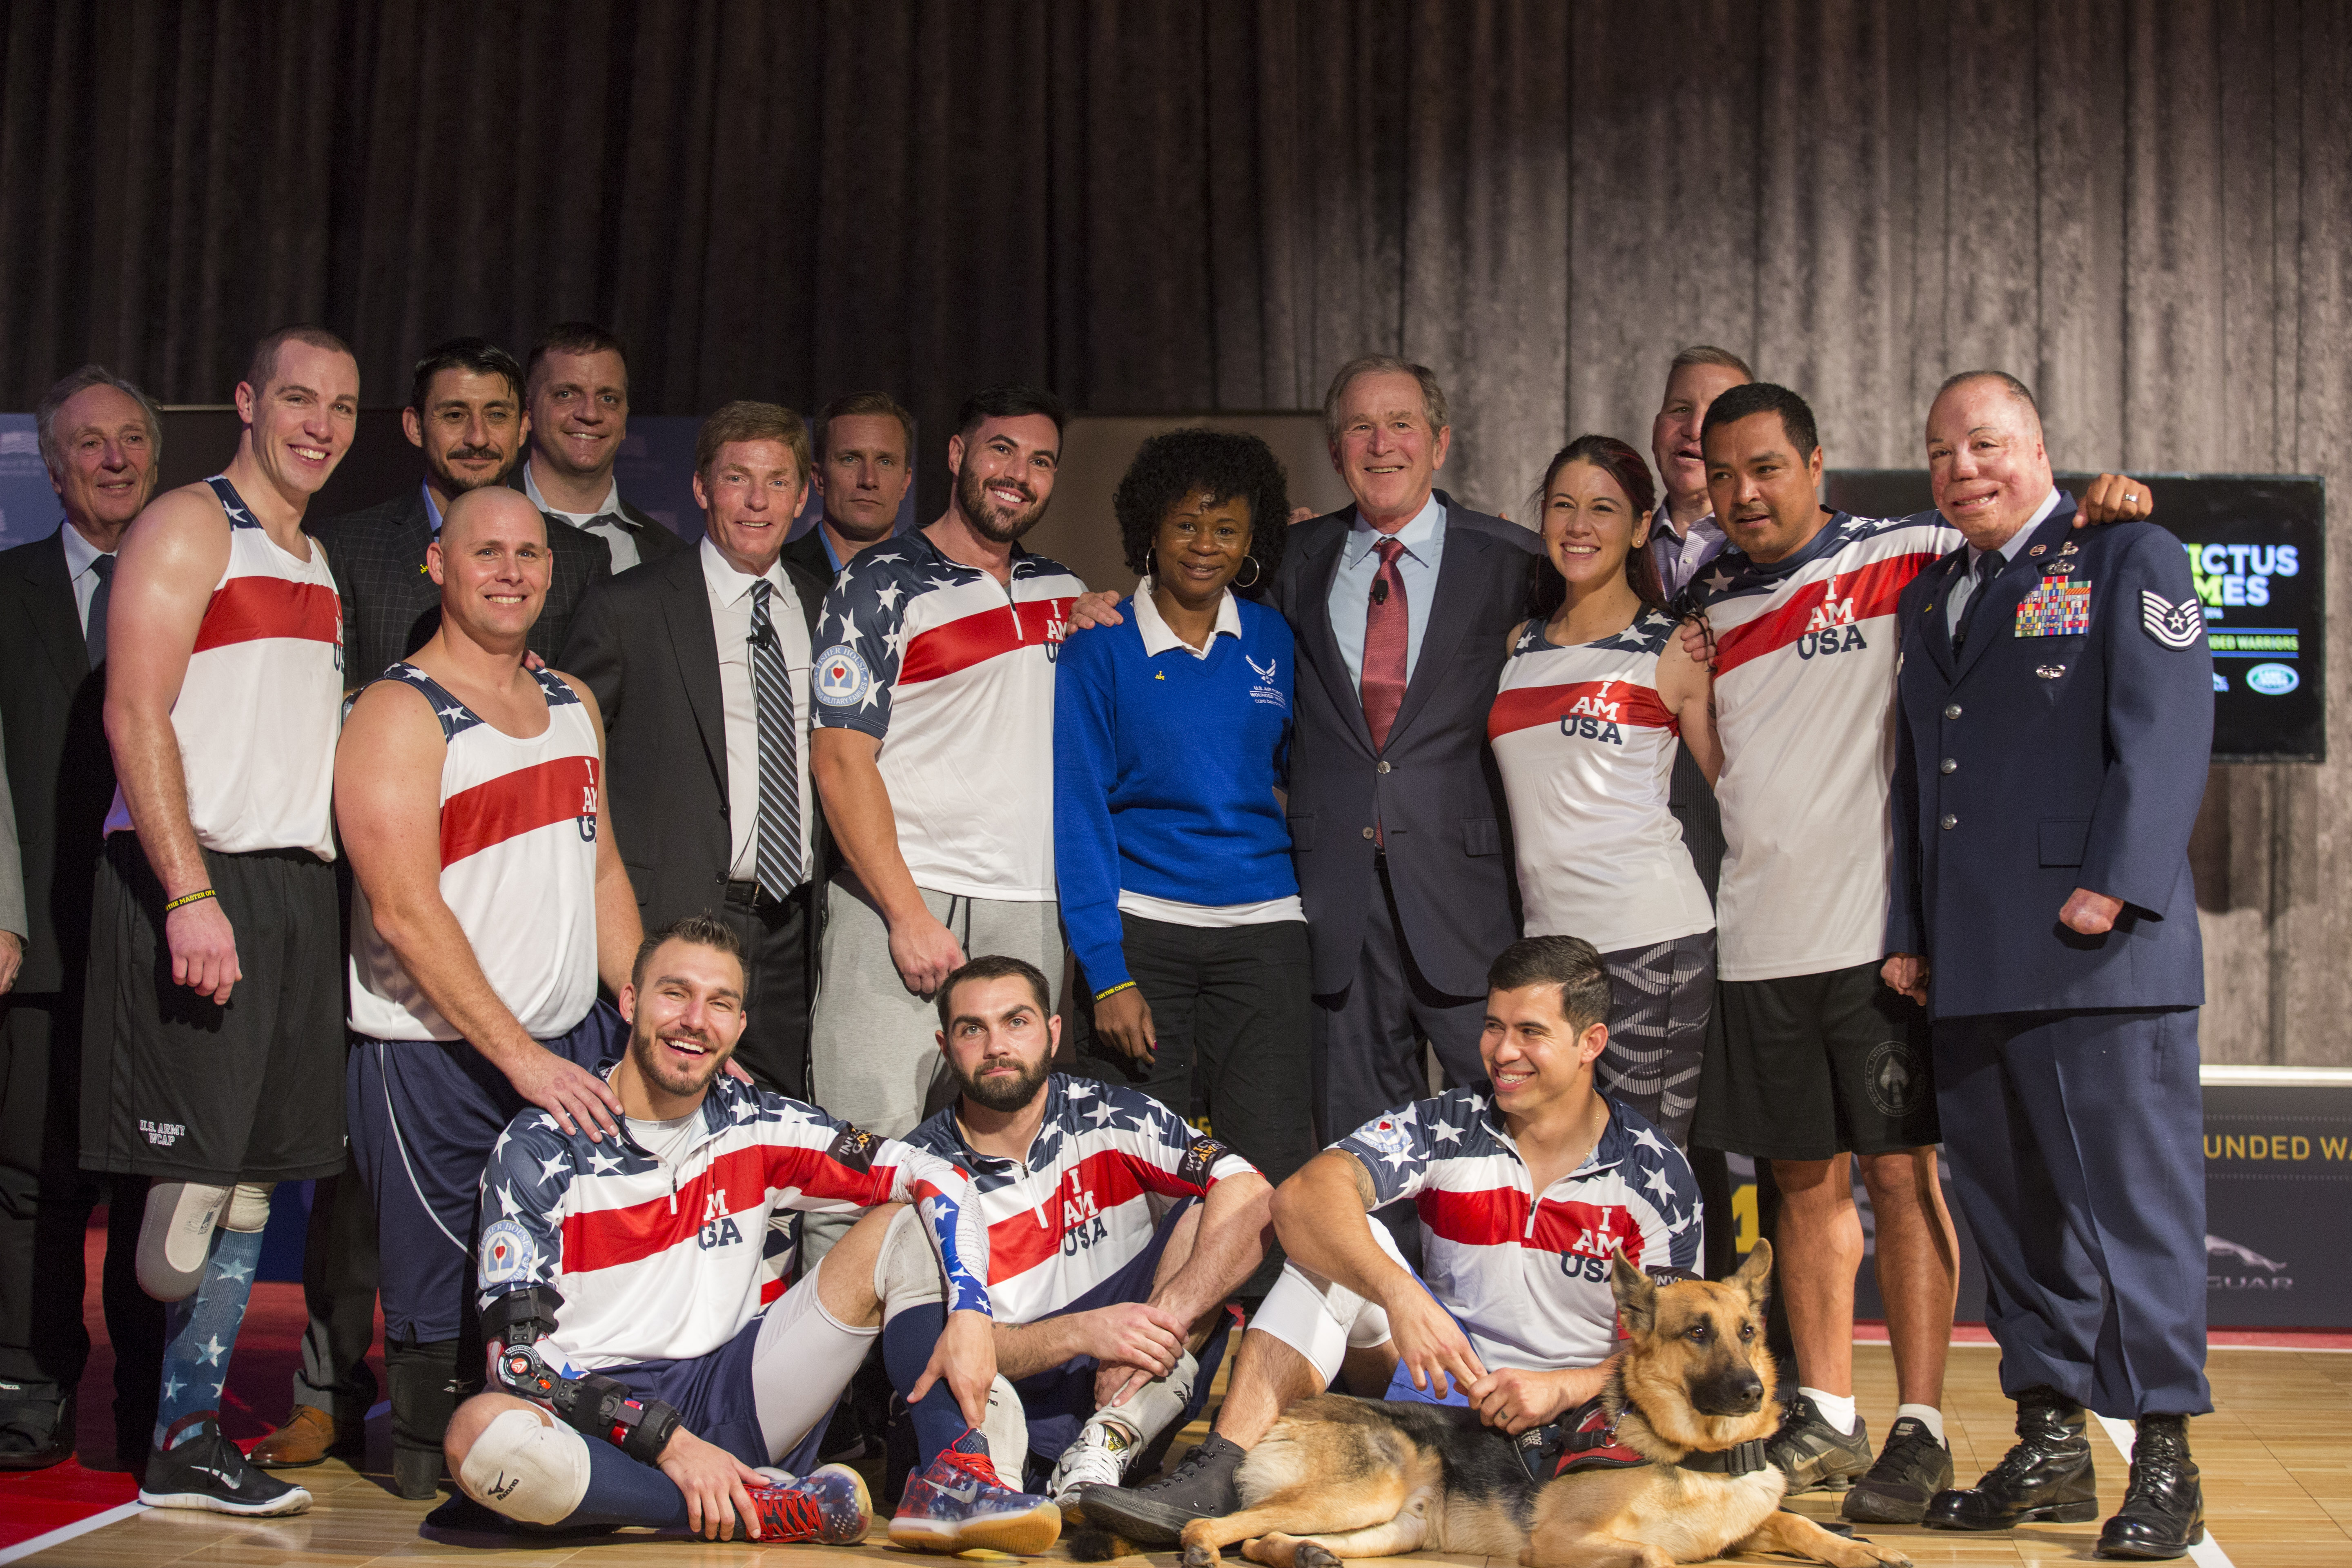 the invictus games symposium on invisible wounds presented by george